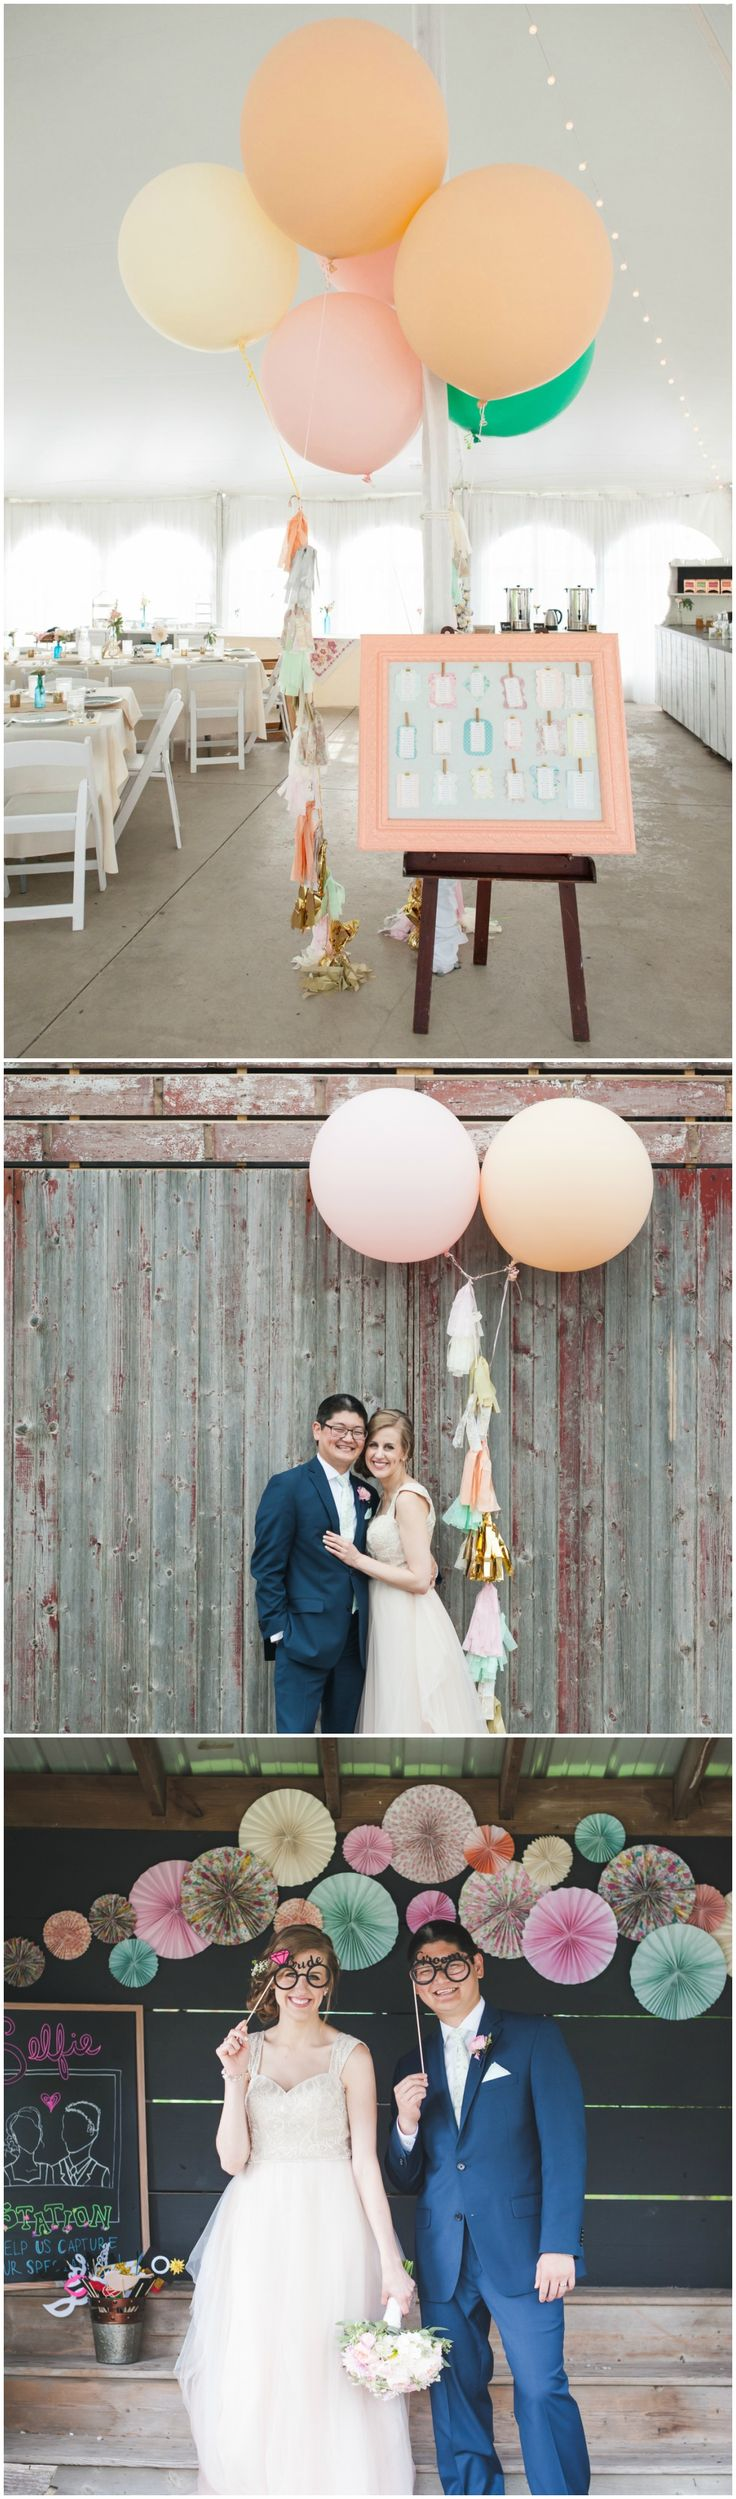 Whimsical wedding, décor ideas, balloons, paper fans, photo booth props // Elite Photo